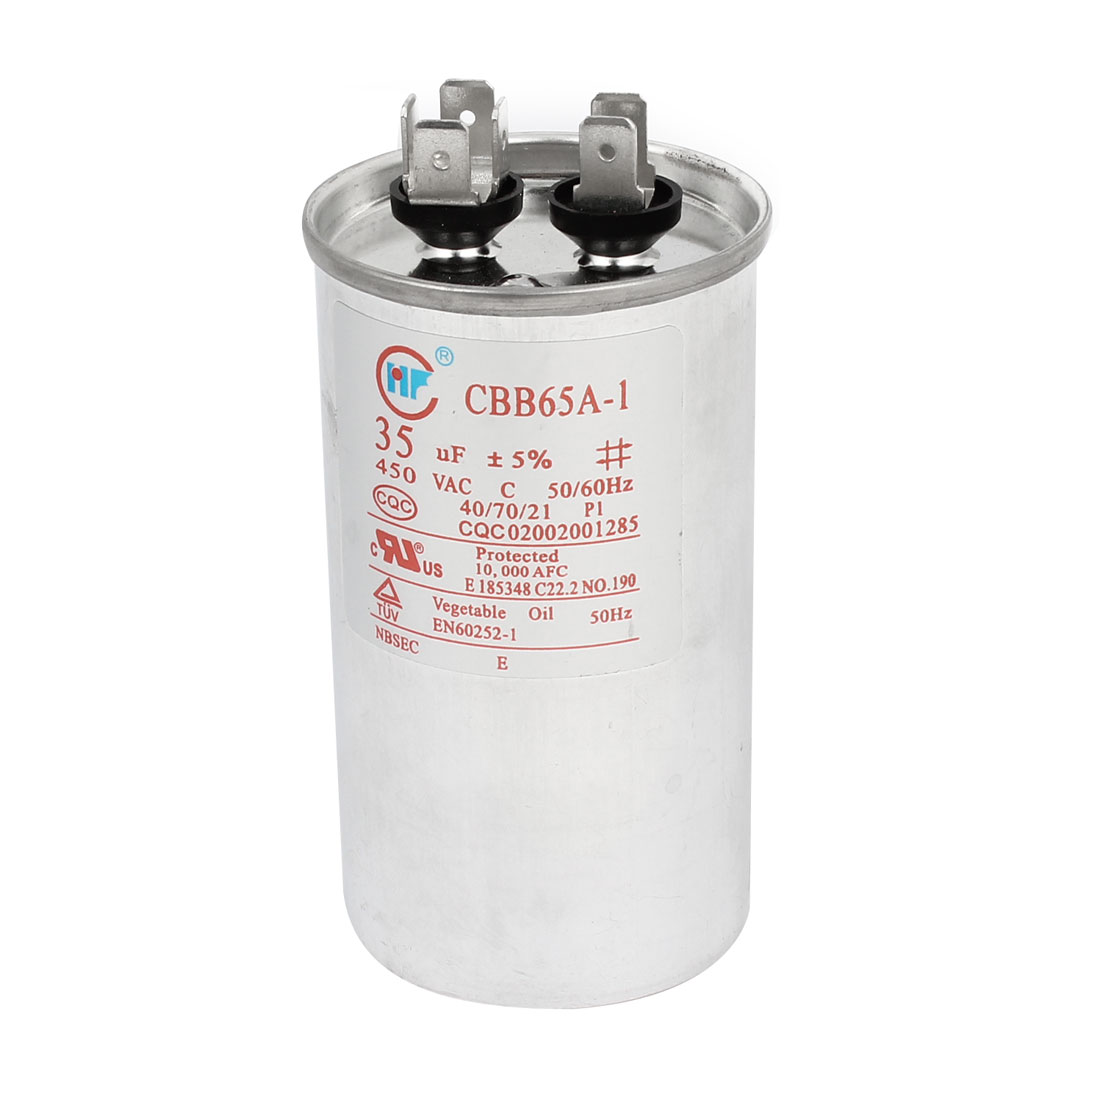 CBB65A-1 AC450V 35uF 5% 50/60Hz Polypropylene Film Non Polar Motor Run Capacitor for Air Conditioner